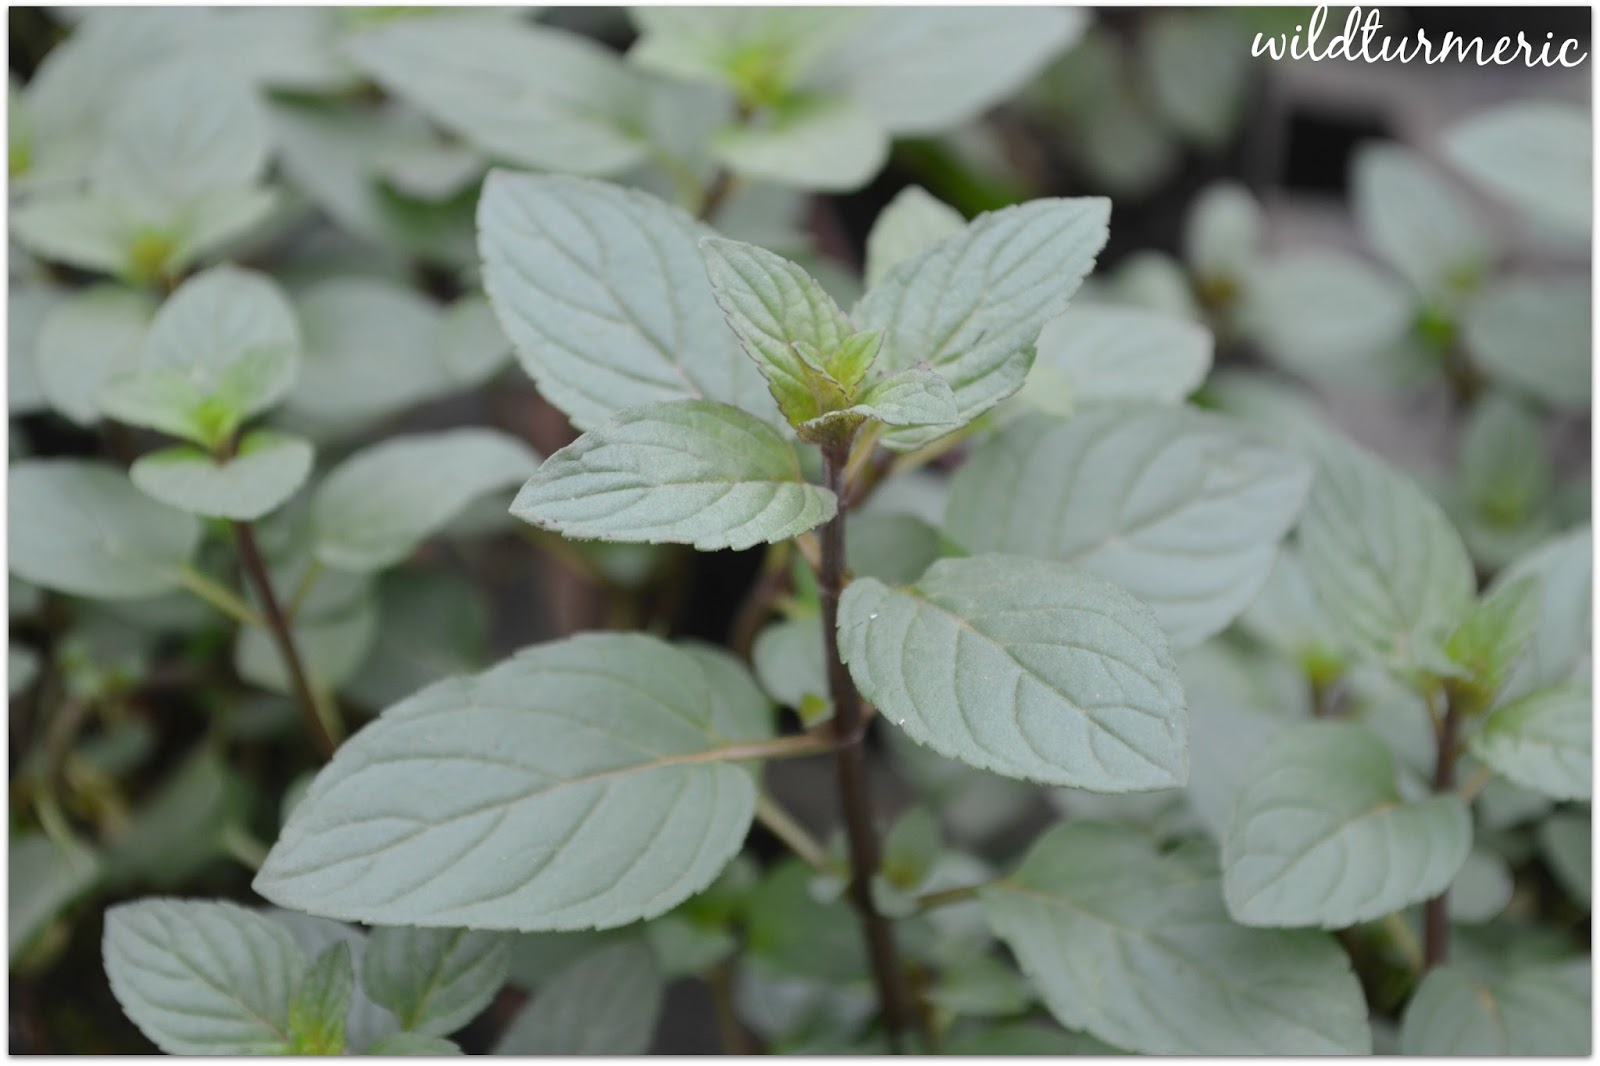 5 Top Medicinal Uses Of Peppermint Mentha Piperita For